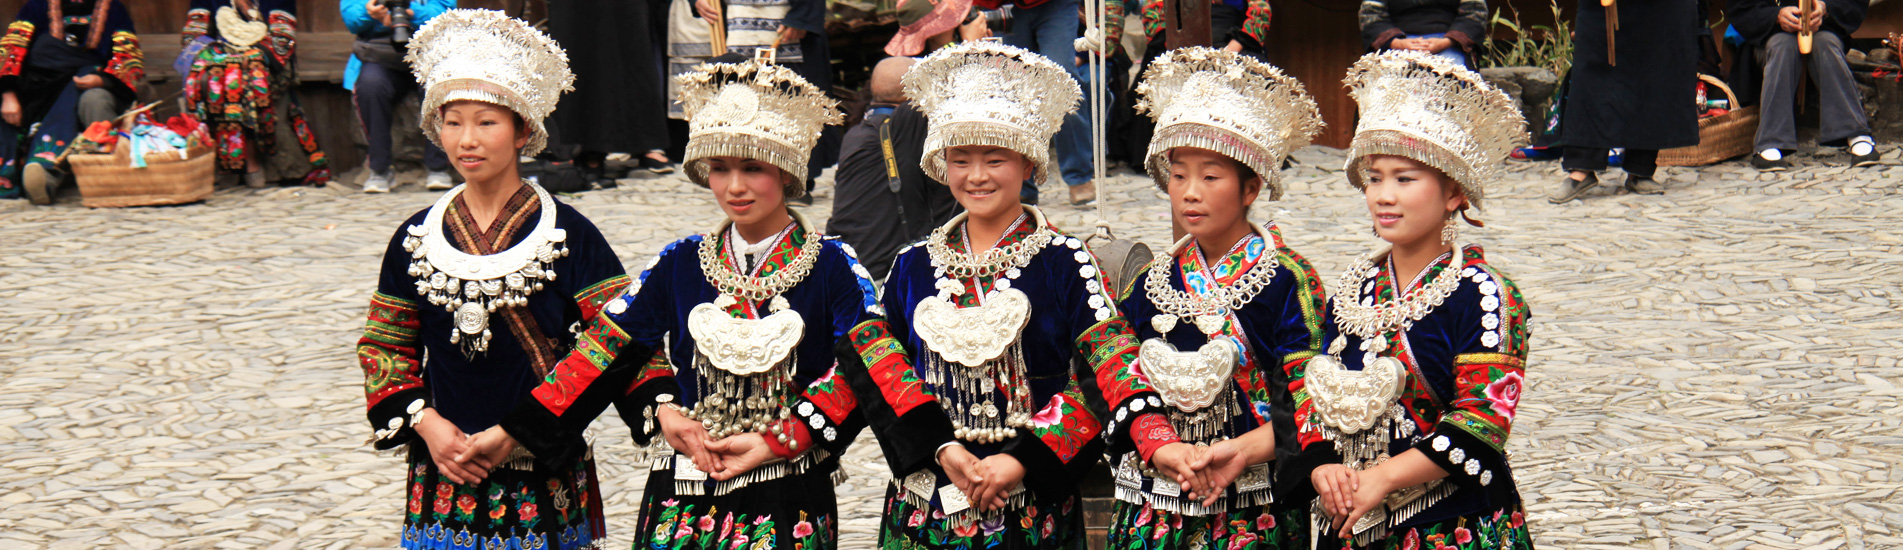 Chinese minority group festival in Guizhou Province